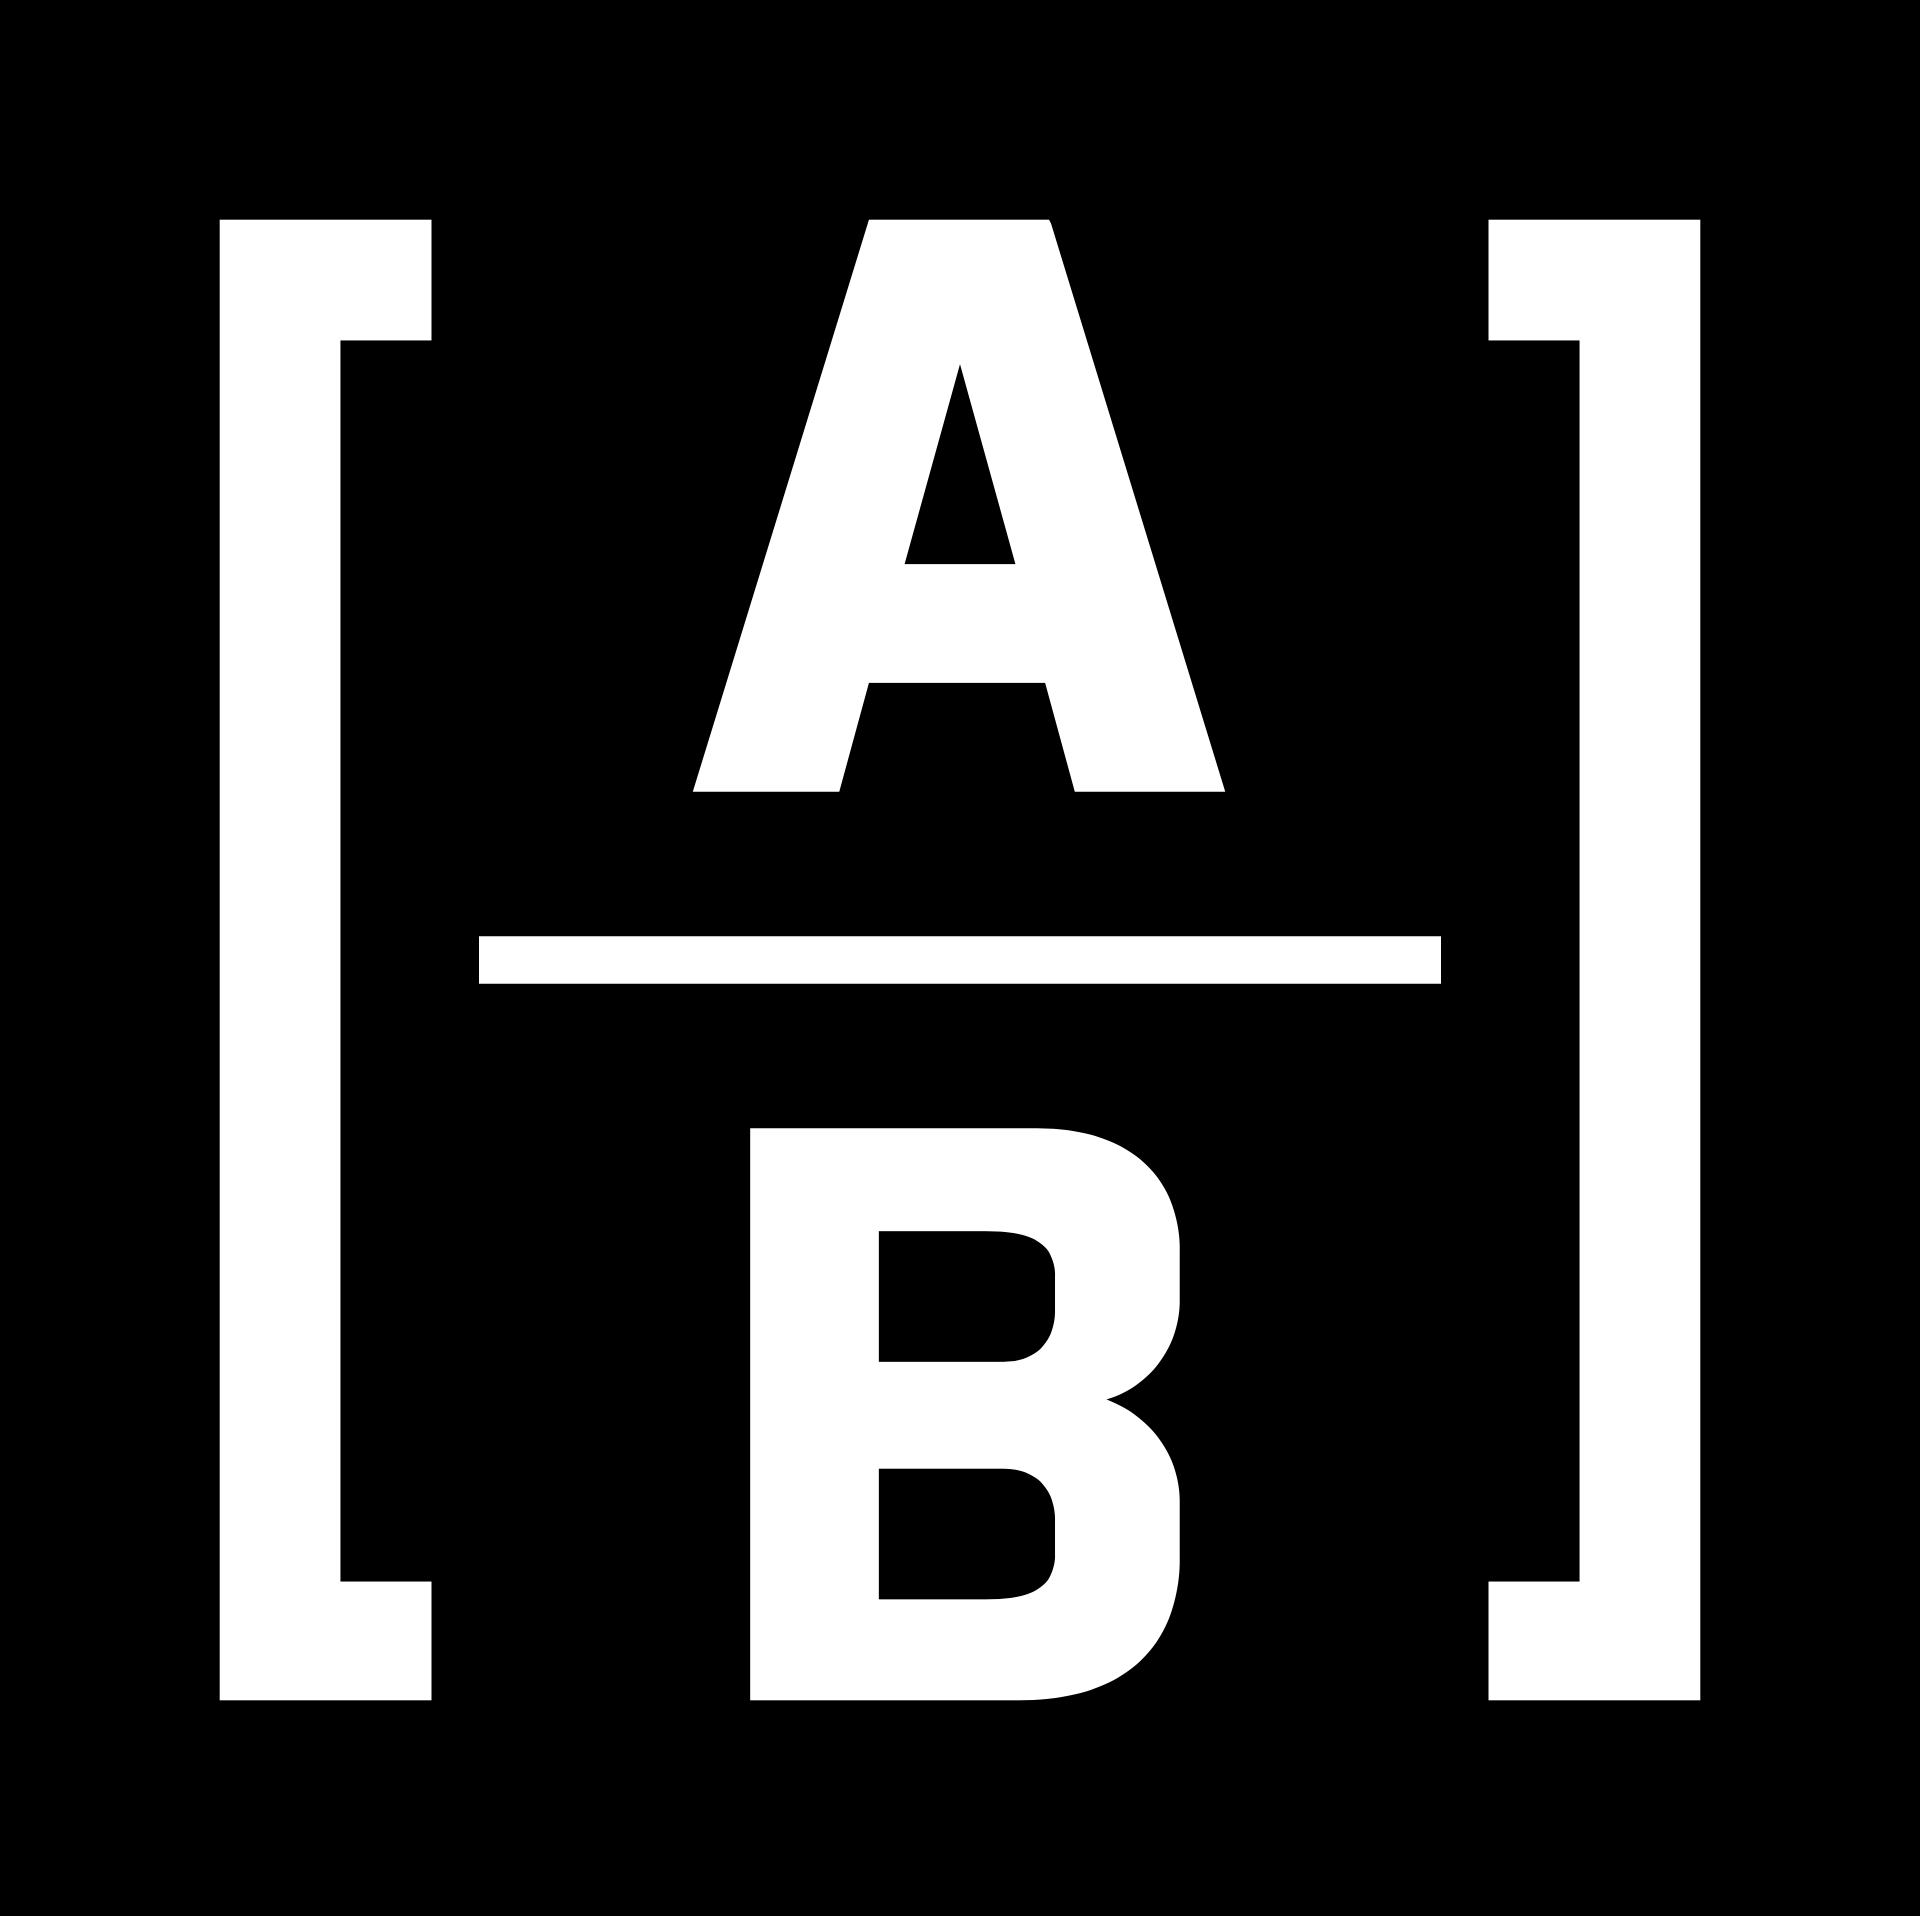 AB (AllianceBernstein L.P.)